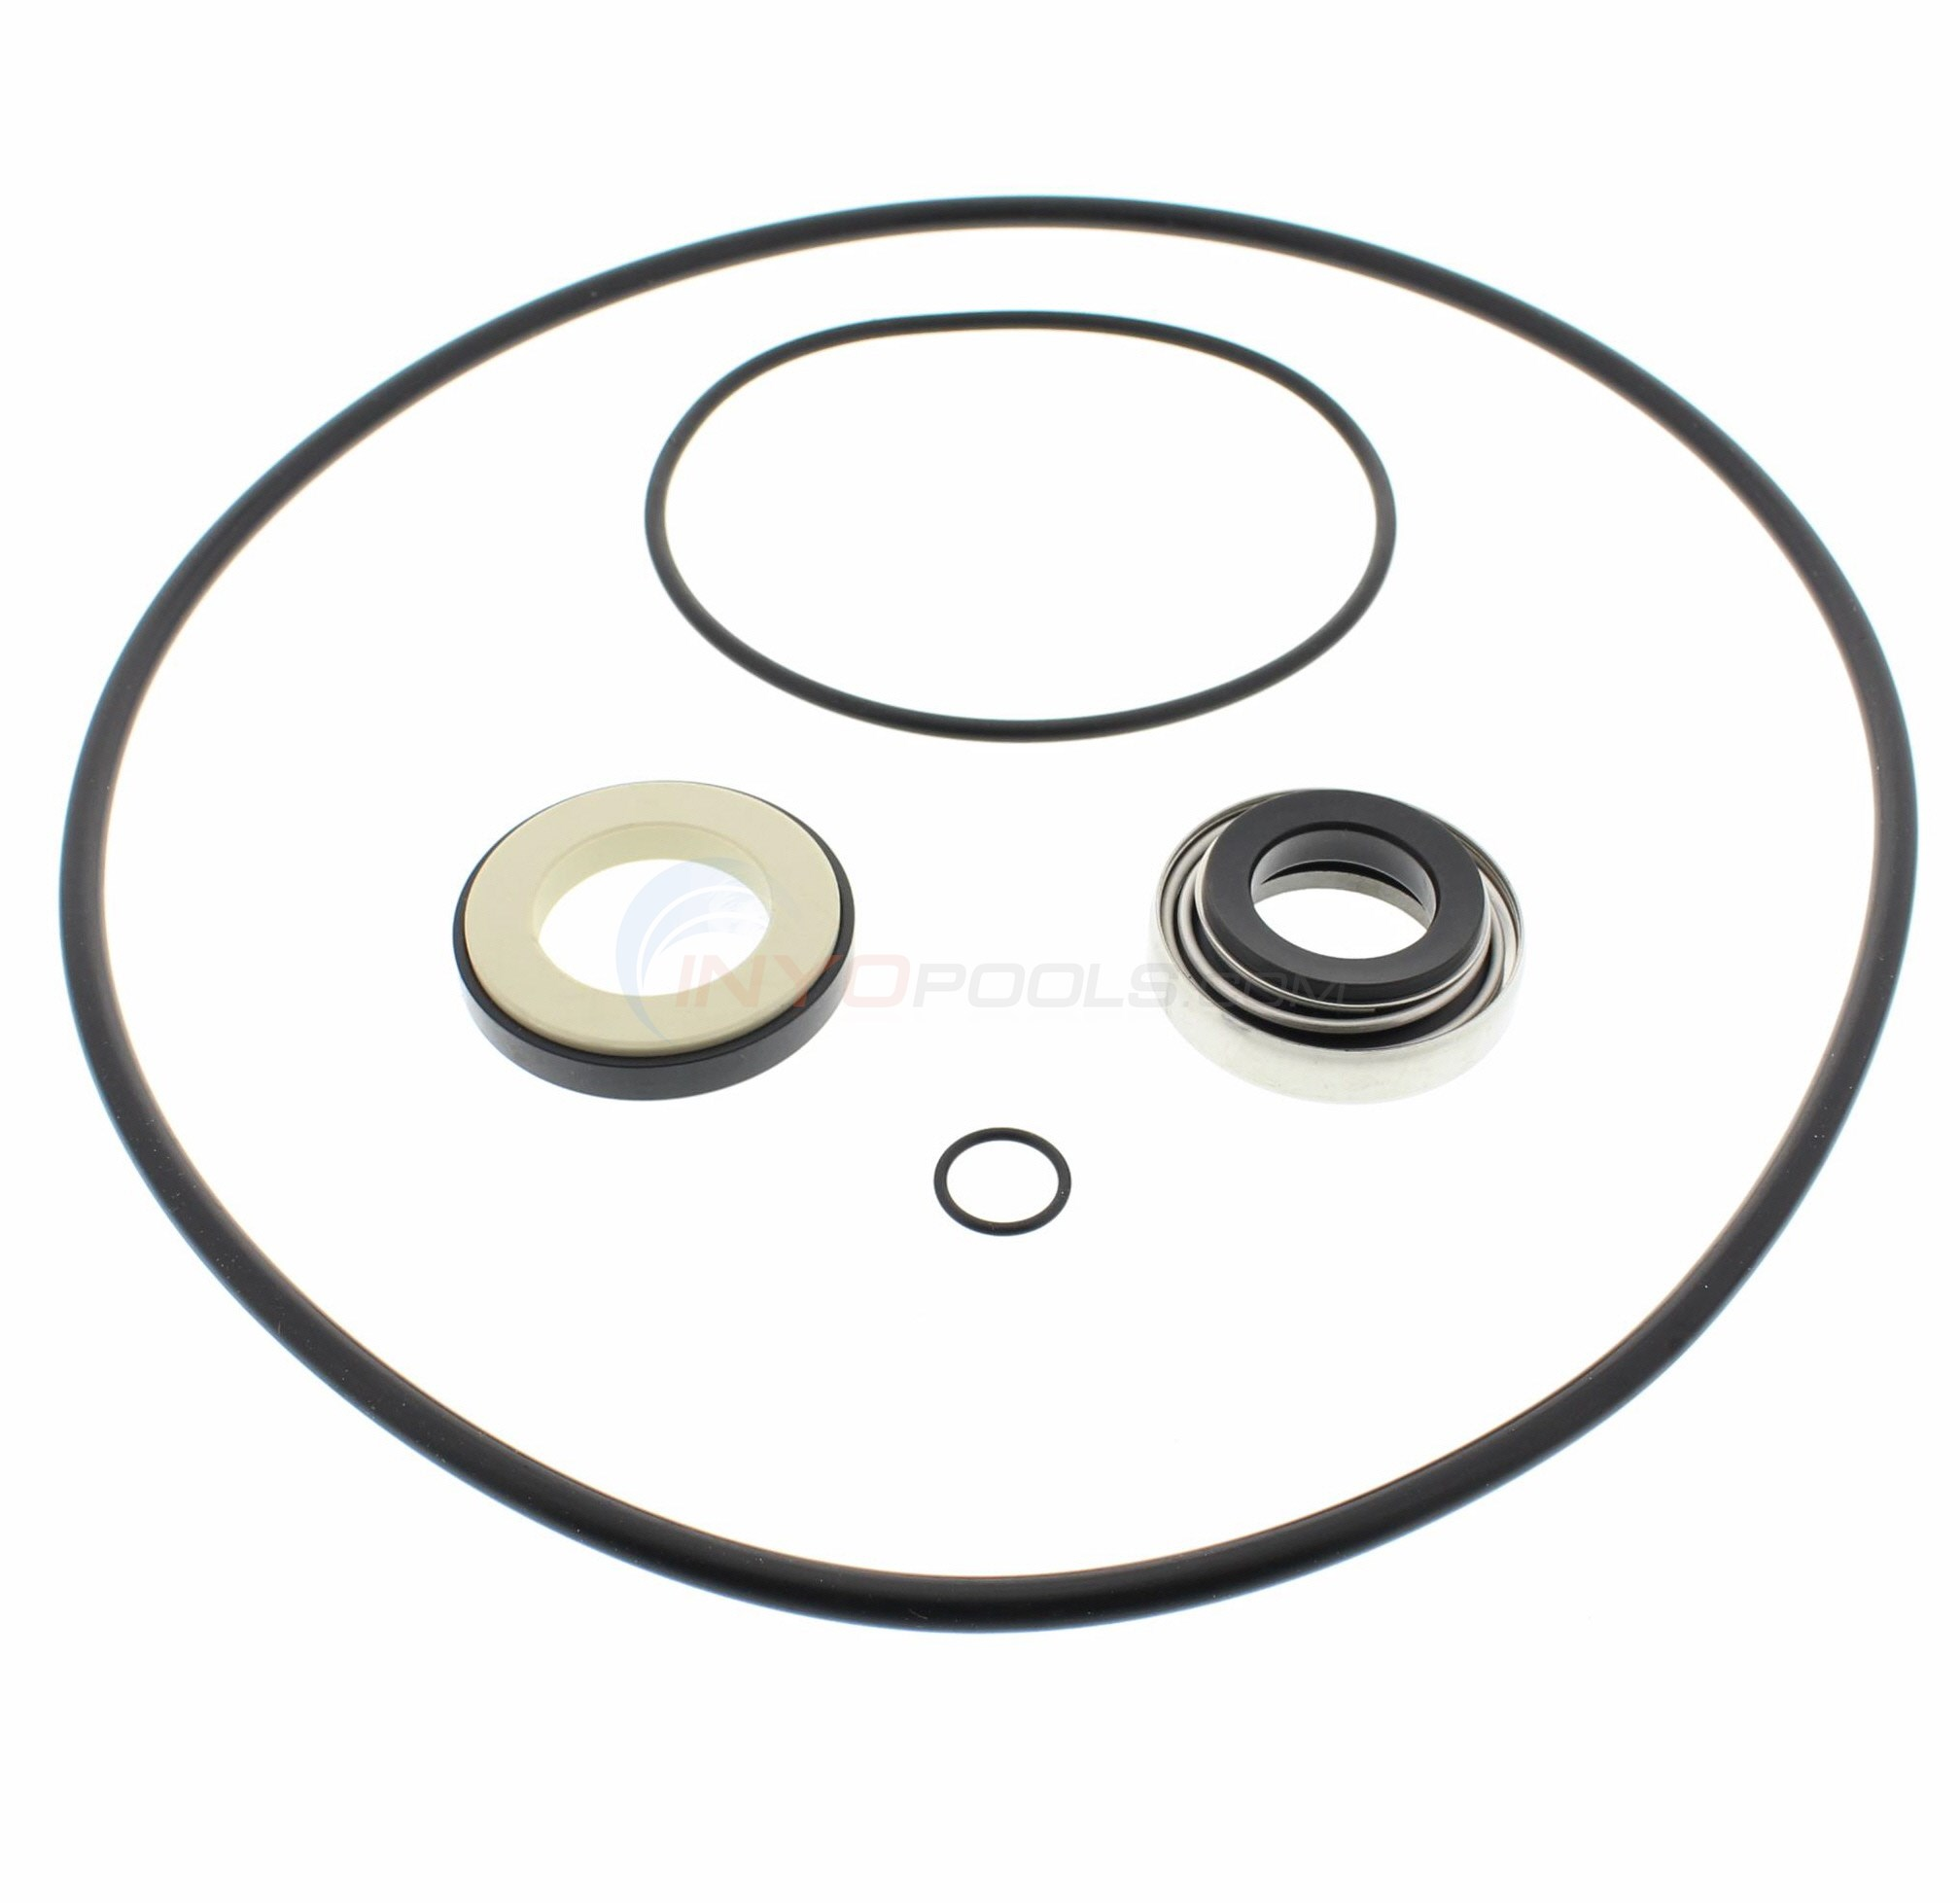 INTERNAL O-RING SET